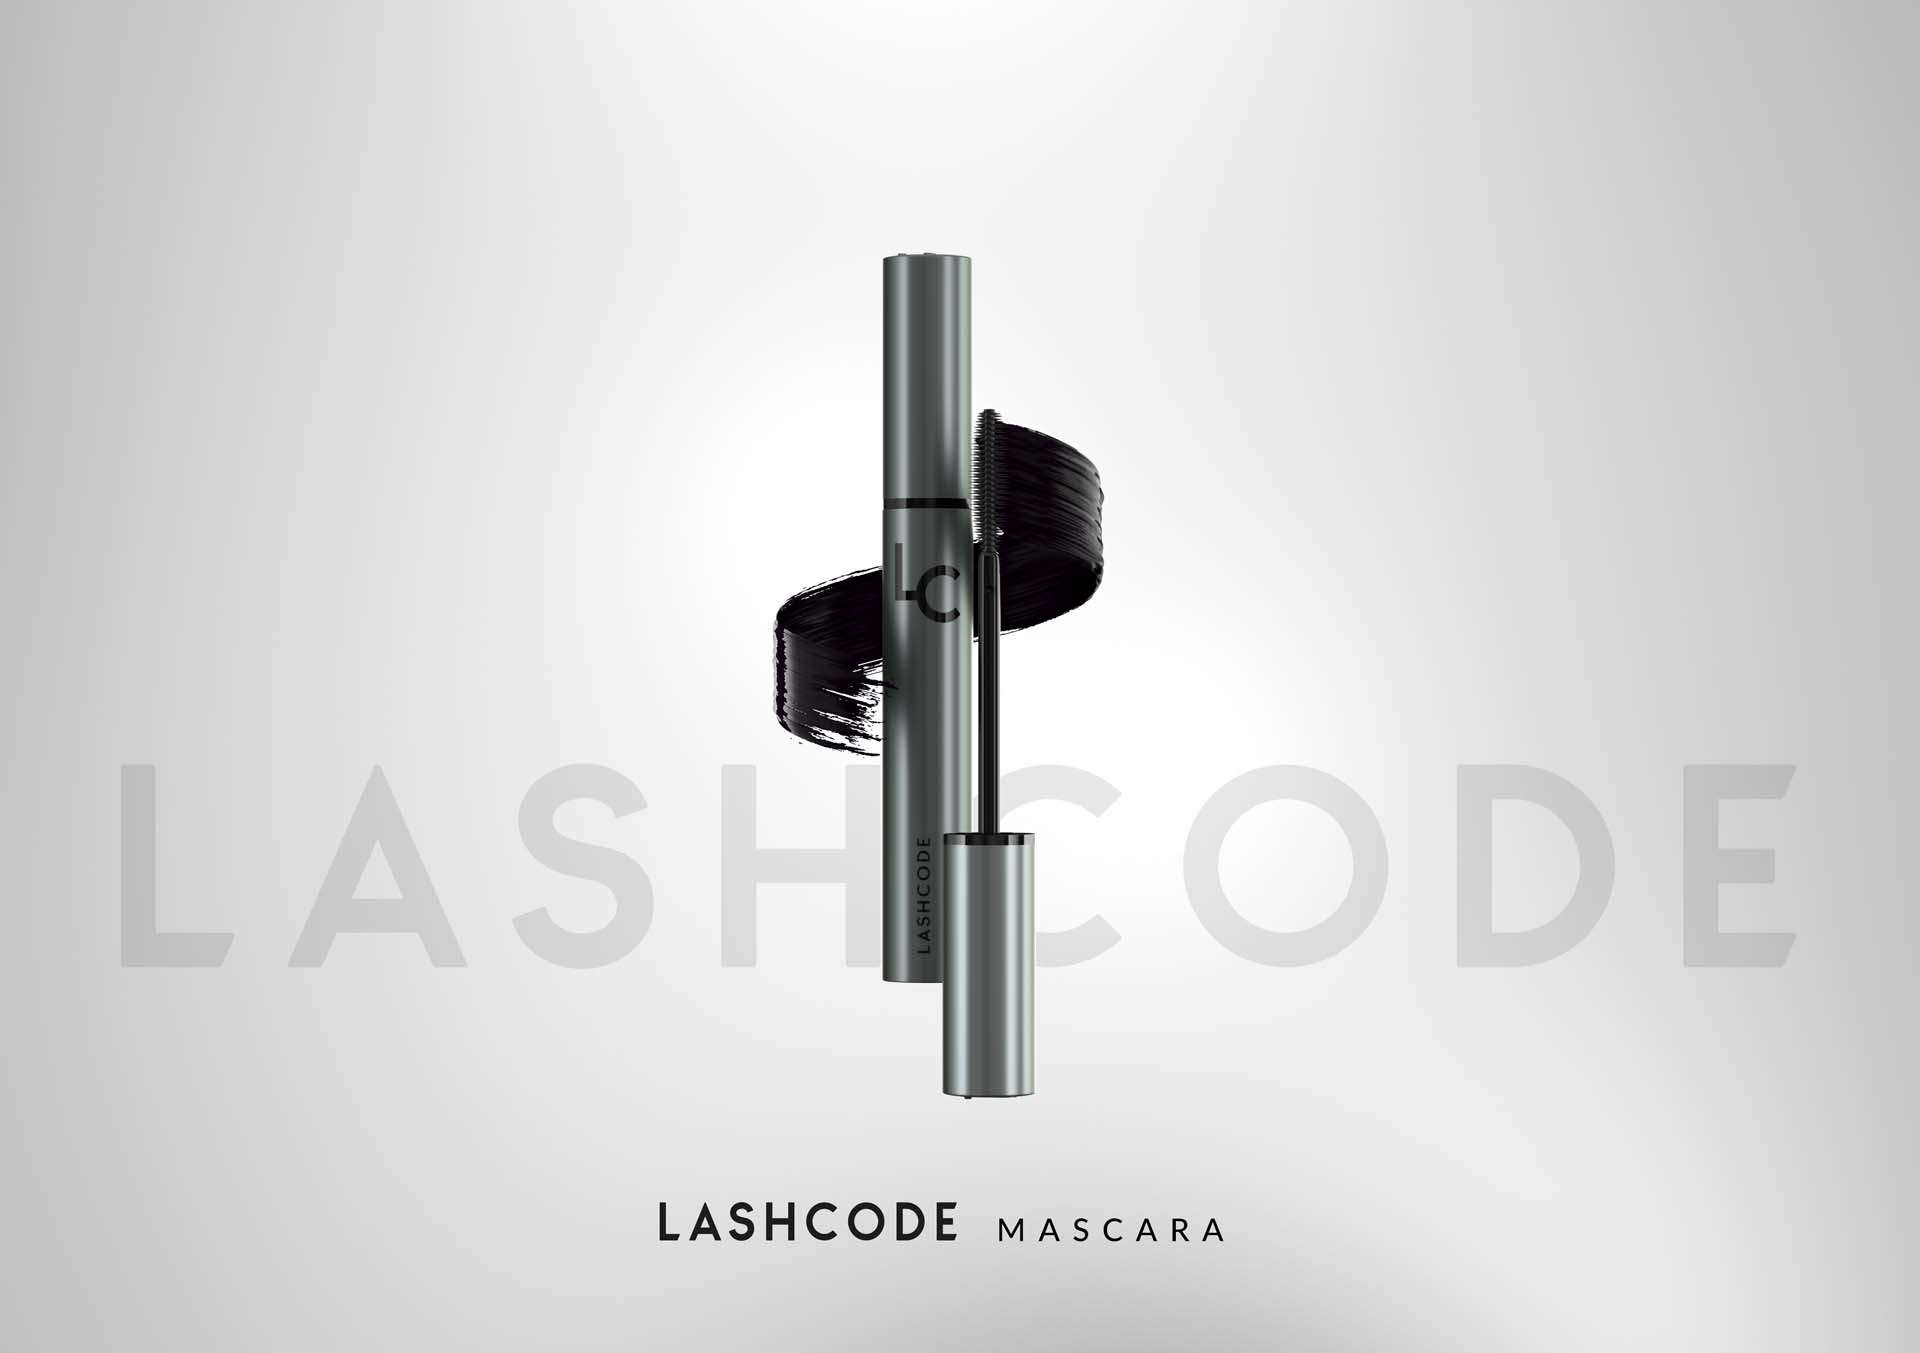 Lashcode mascara. High-level makeup